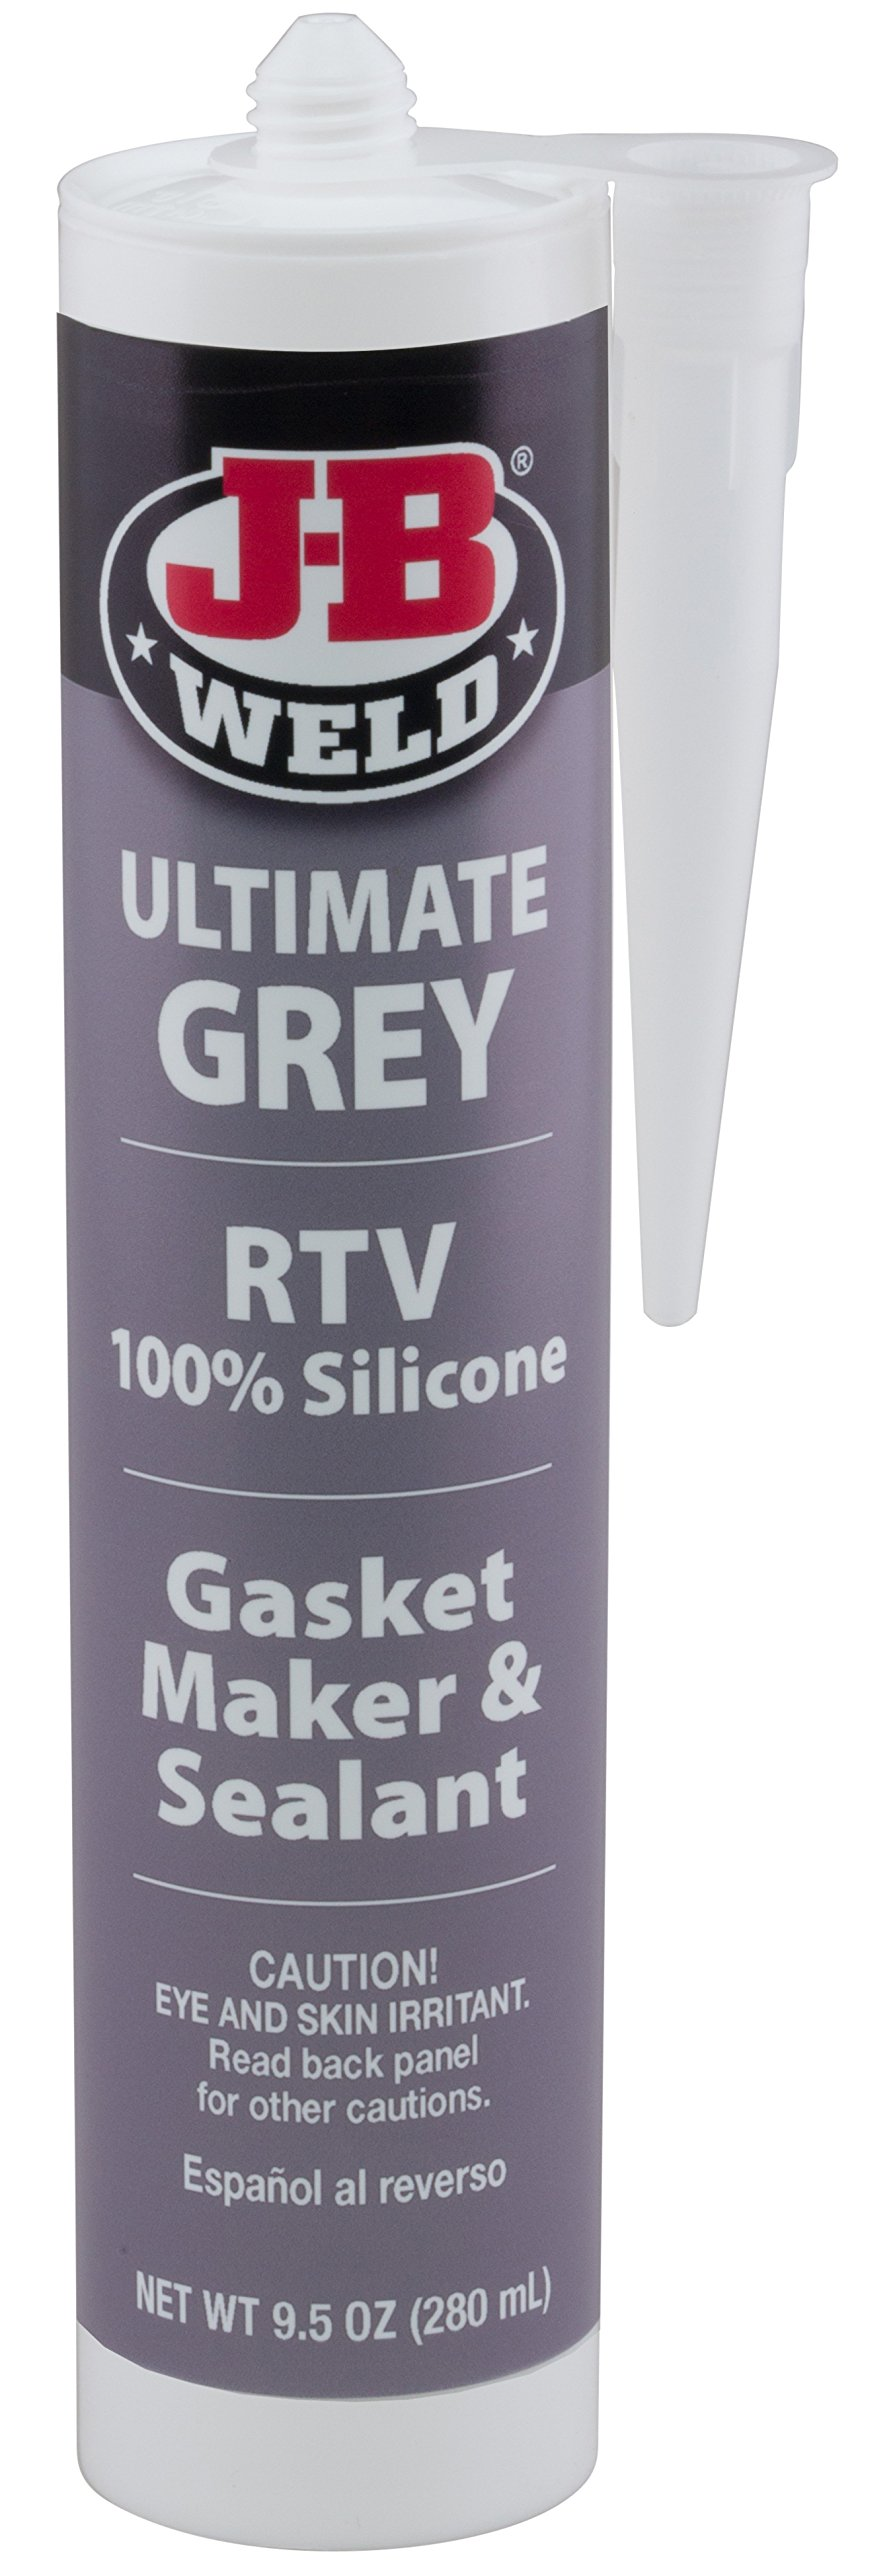 J-B Weld 32927 Ultimate Grey RTV Silicone Gasket Maker and Sealant - 9.5 oz.